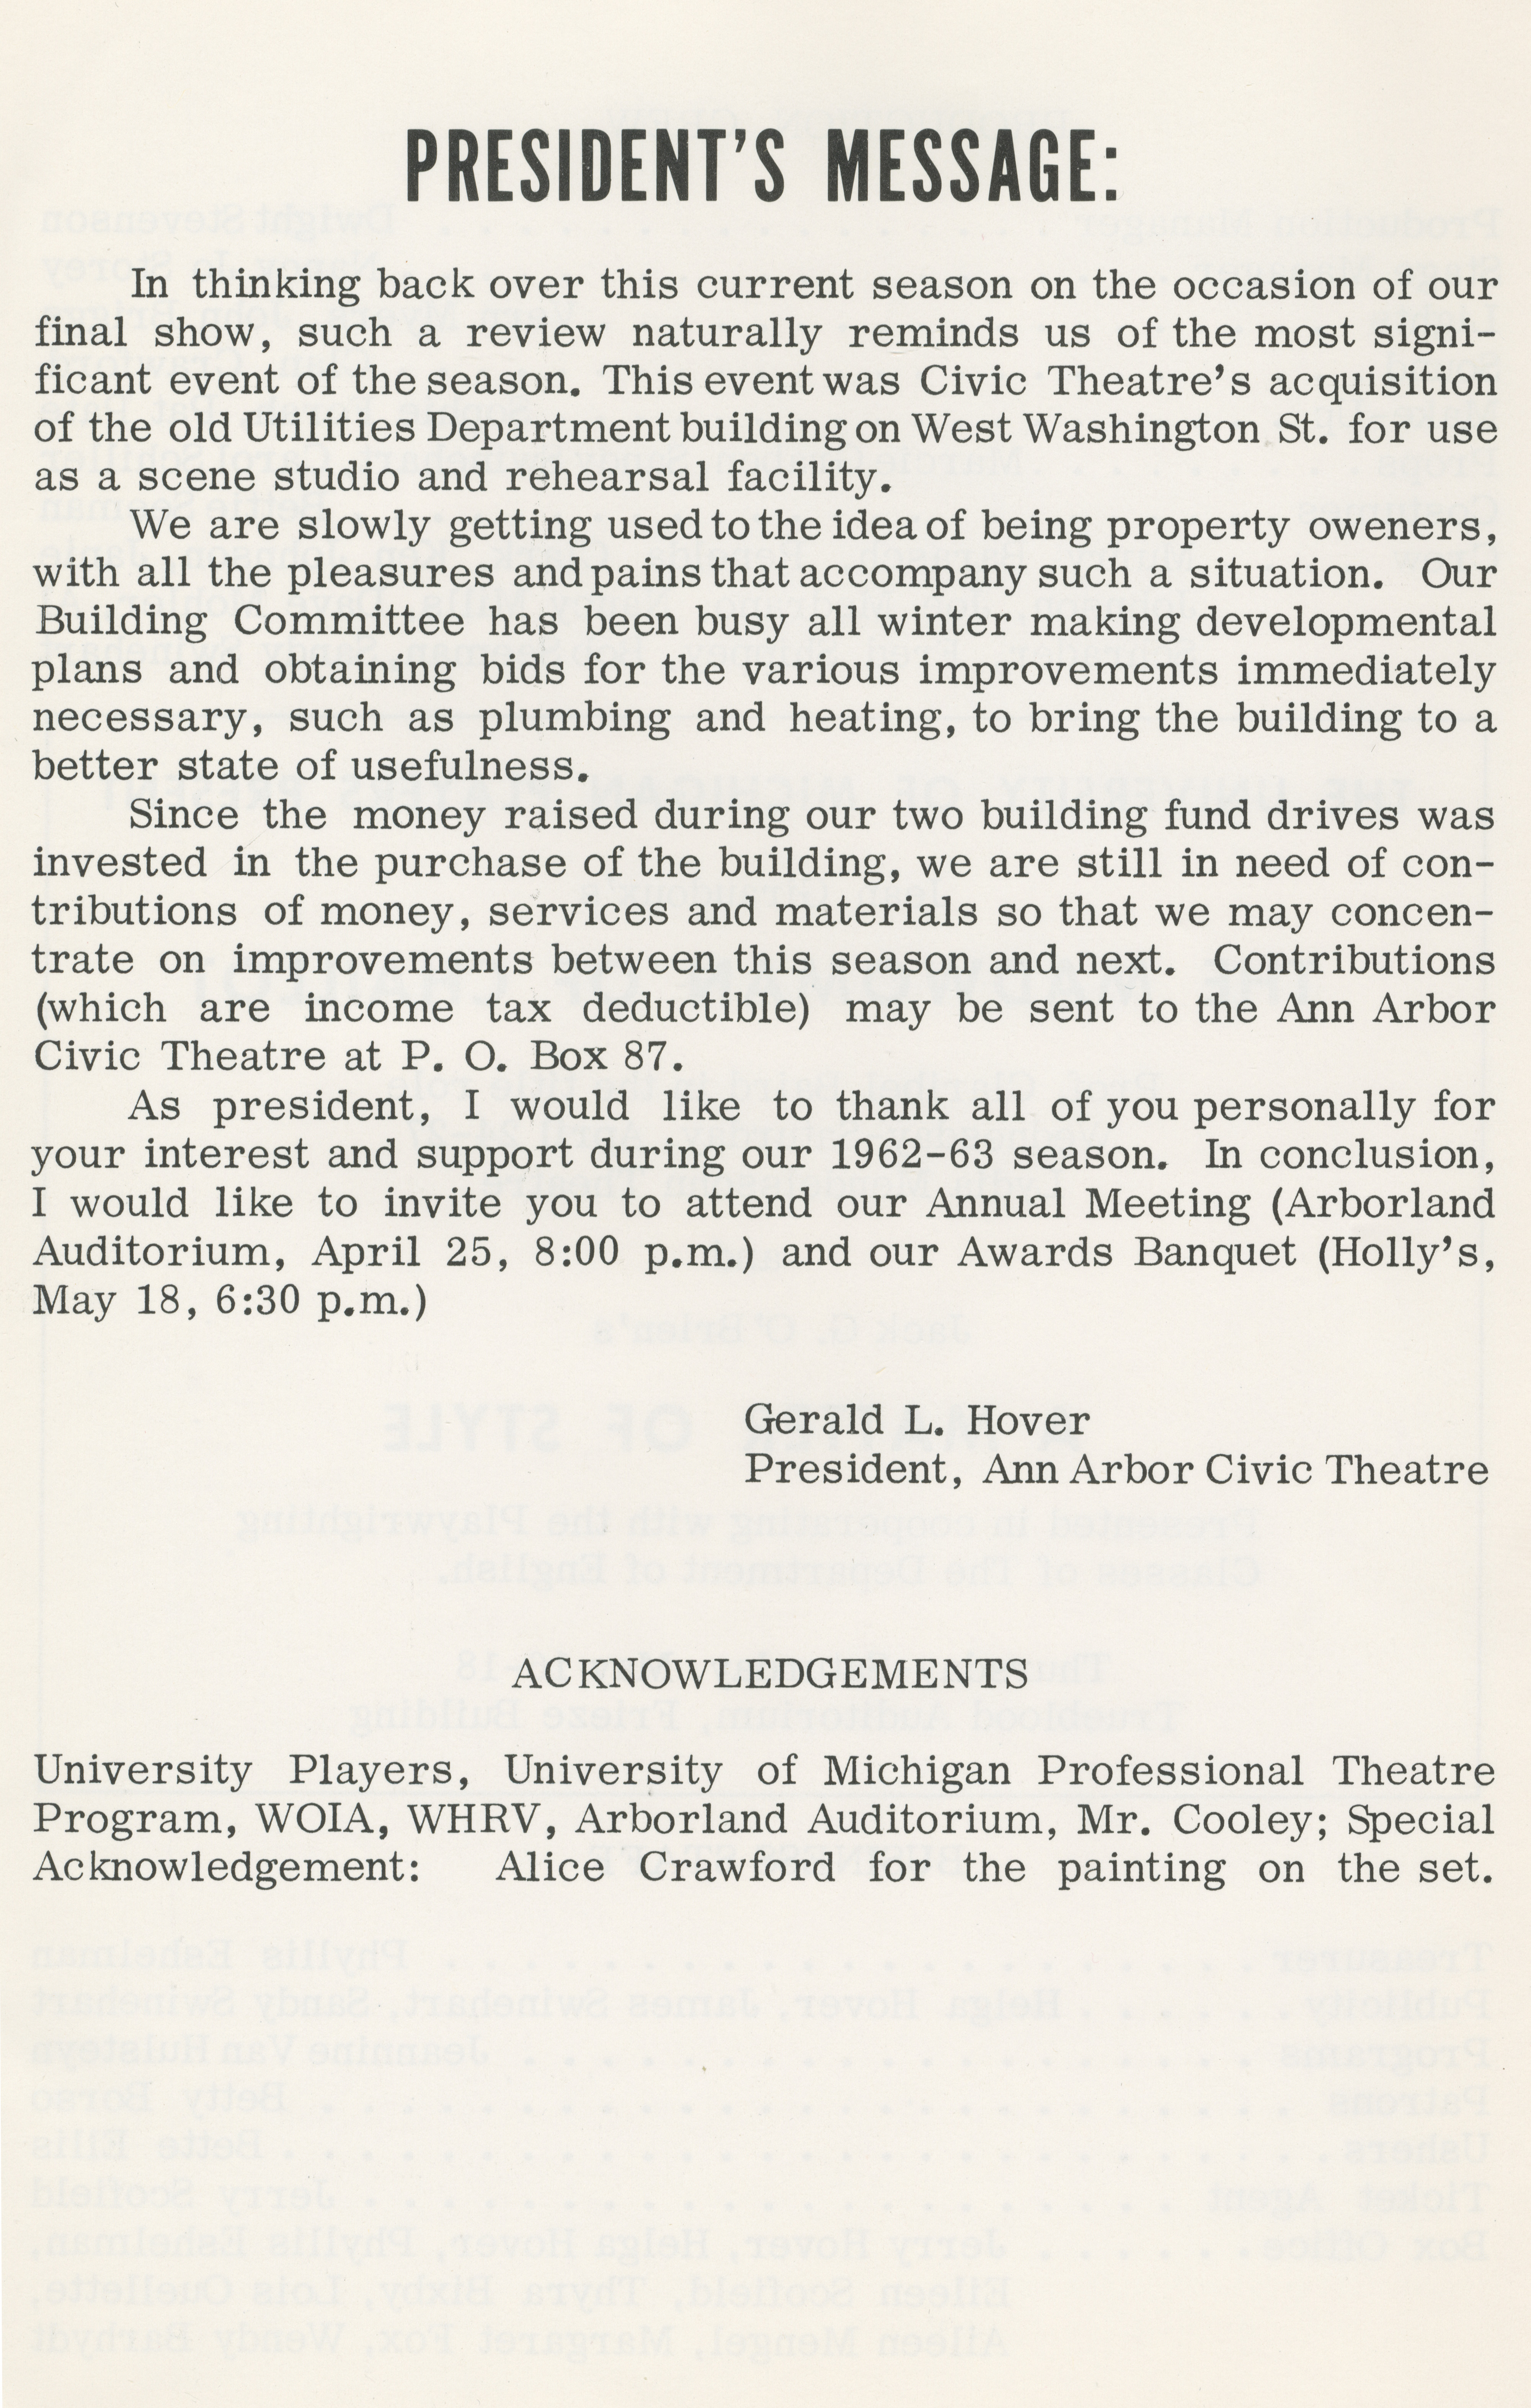 Ann Arbor Civic Theatre Program: See How They Run, April 18, 1963 image